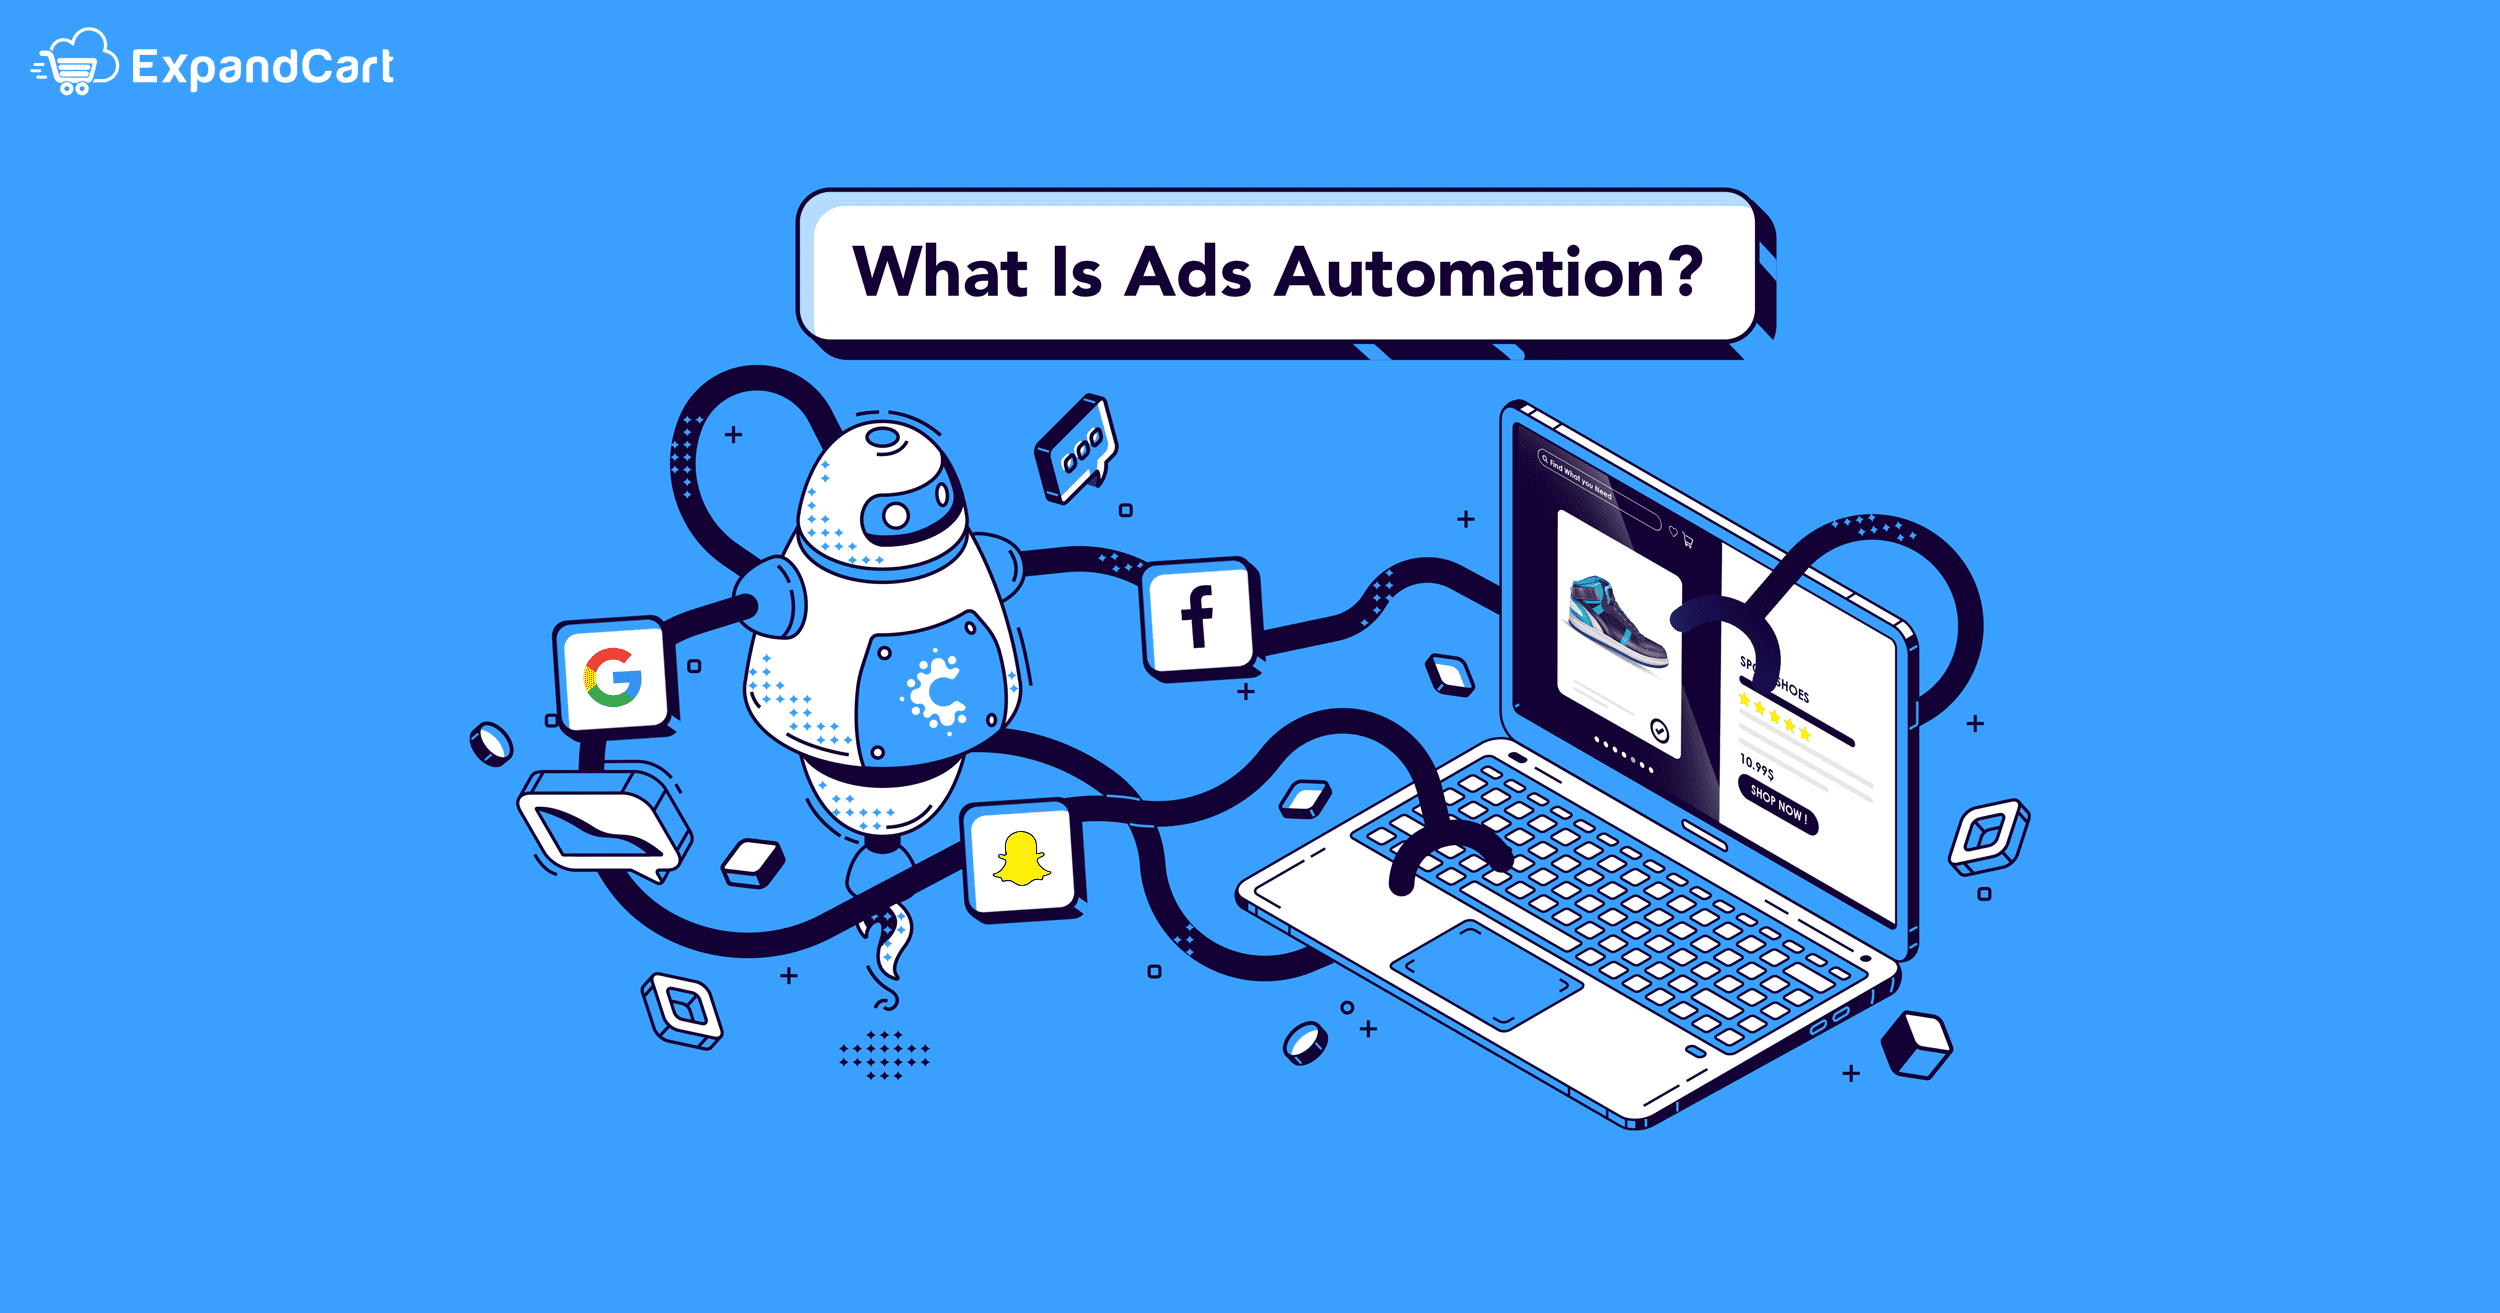 What is Ads Automation